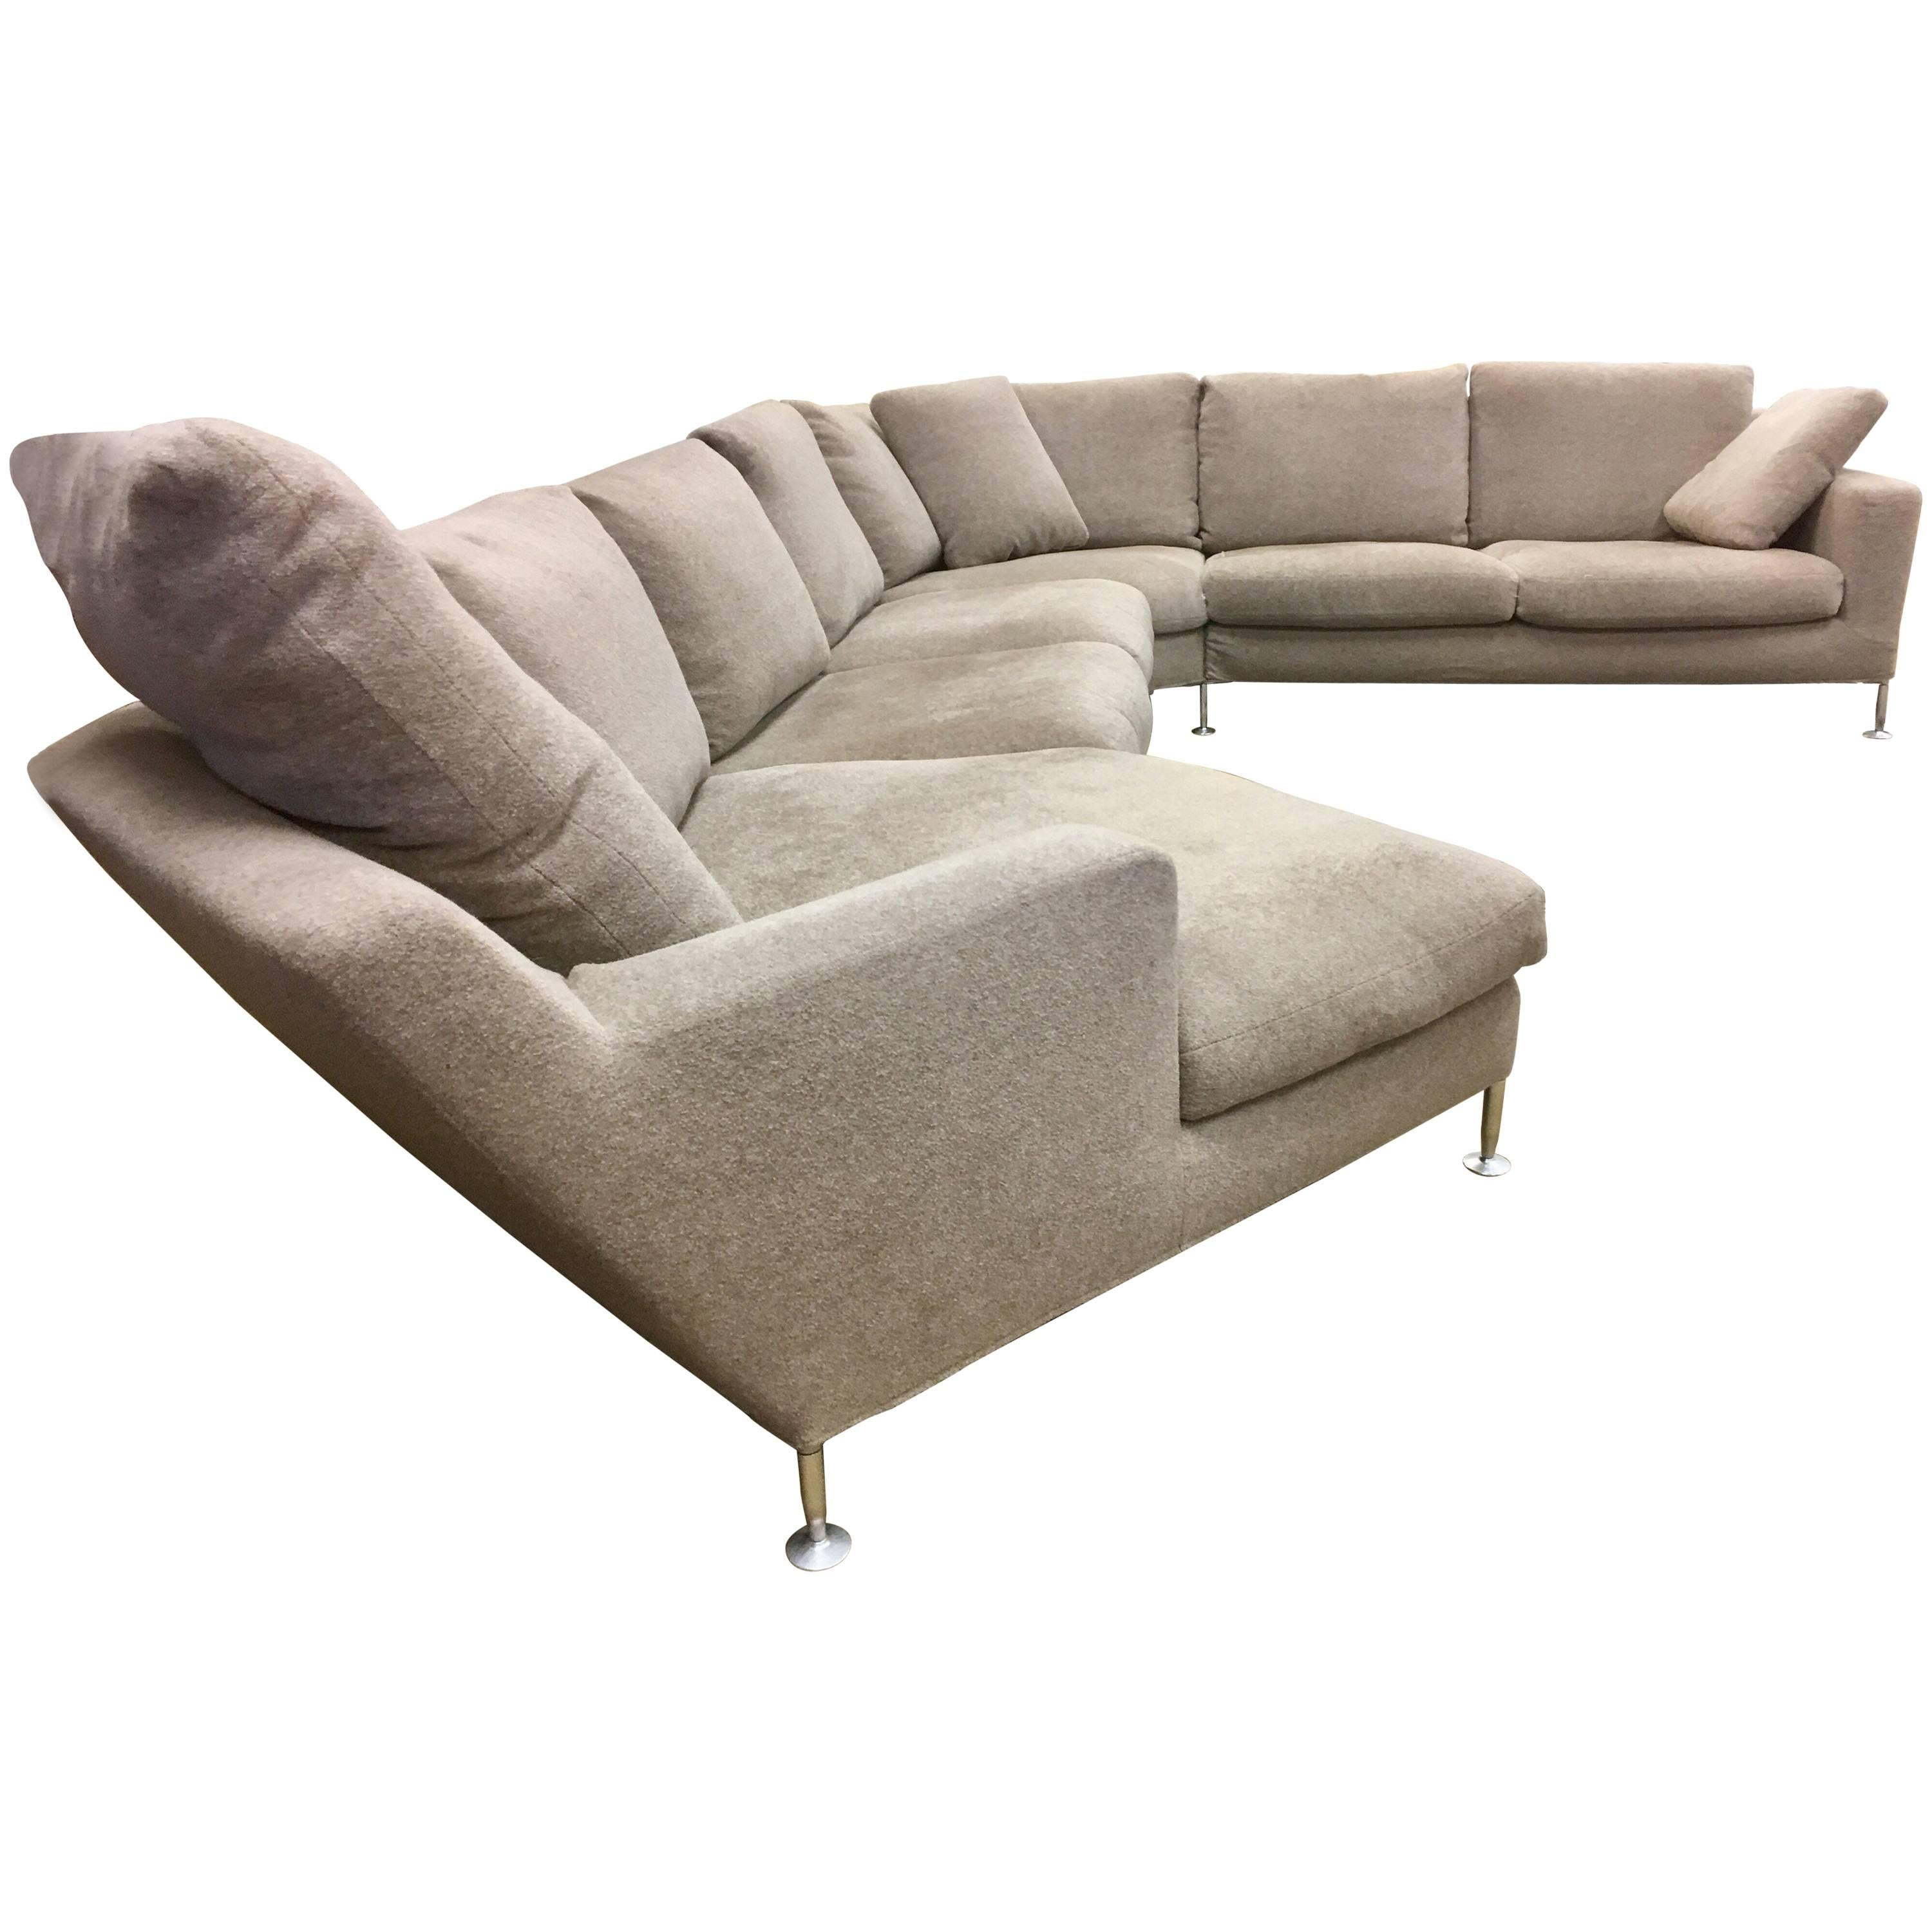 Bu0026amp;B Italia Extra Large Harry Sectional Sofa By Antonio Citterio Made In  Italy